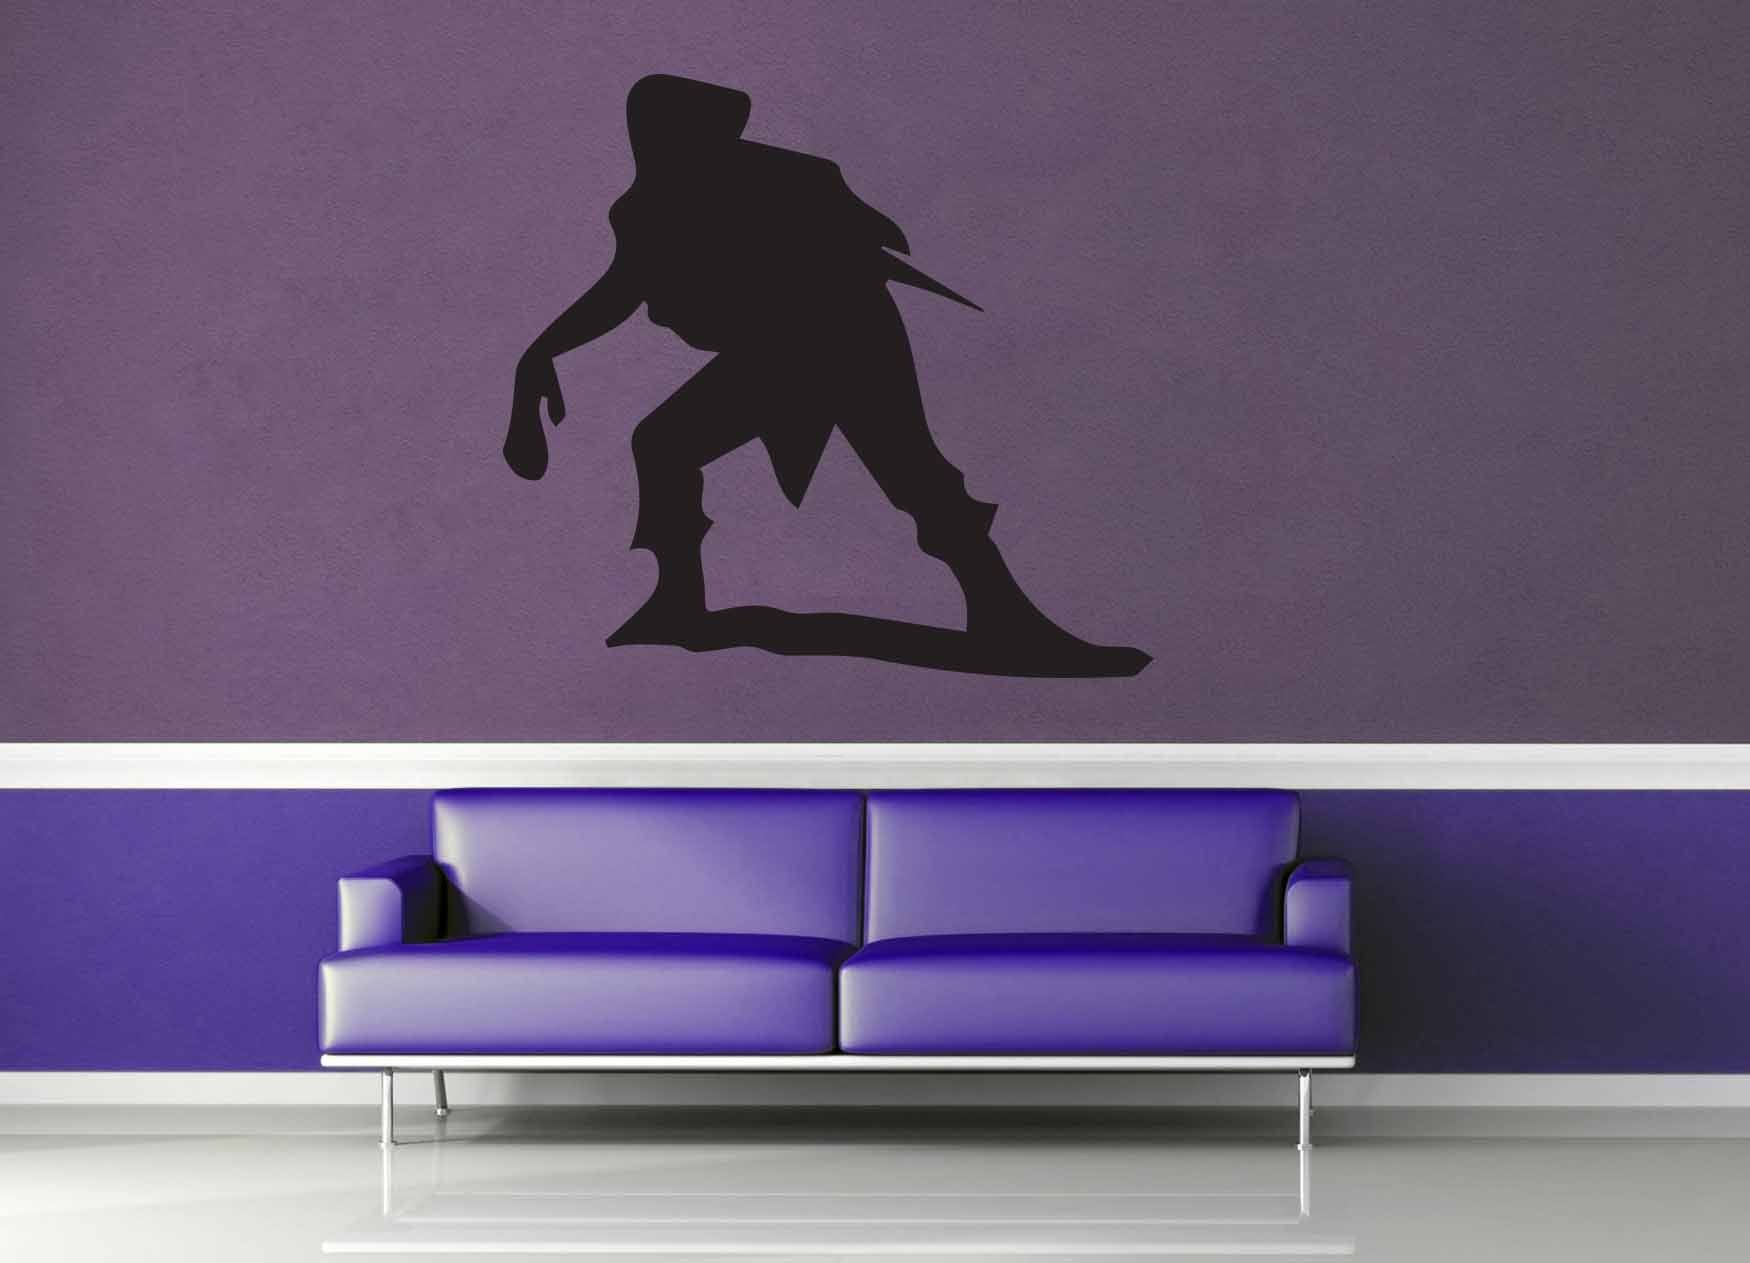 Thief Silhouette - Wall Decal